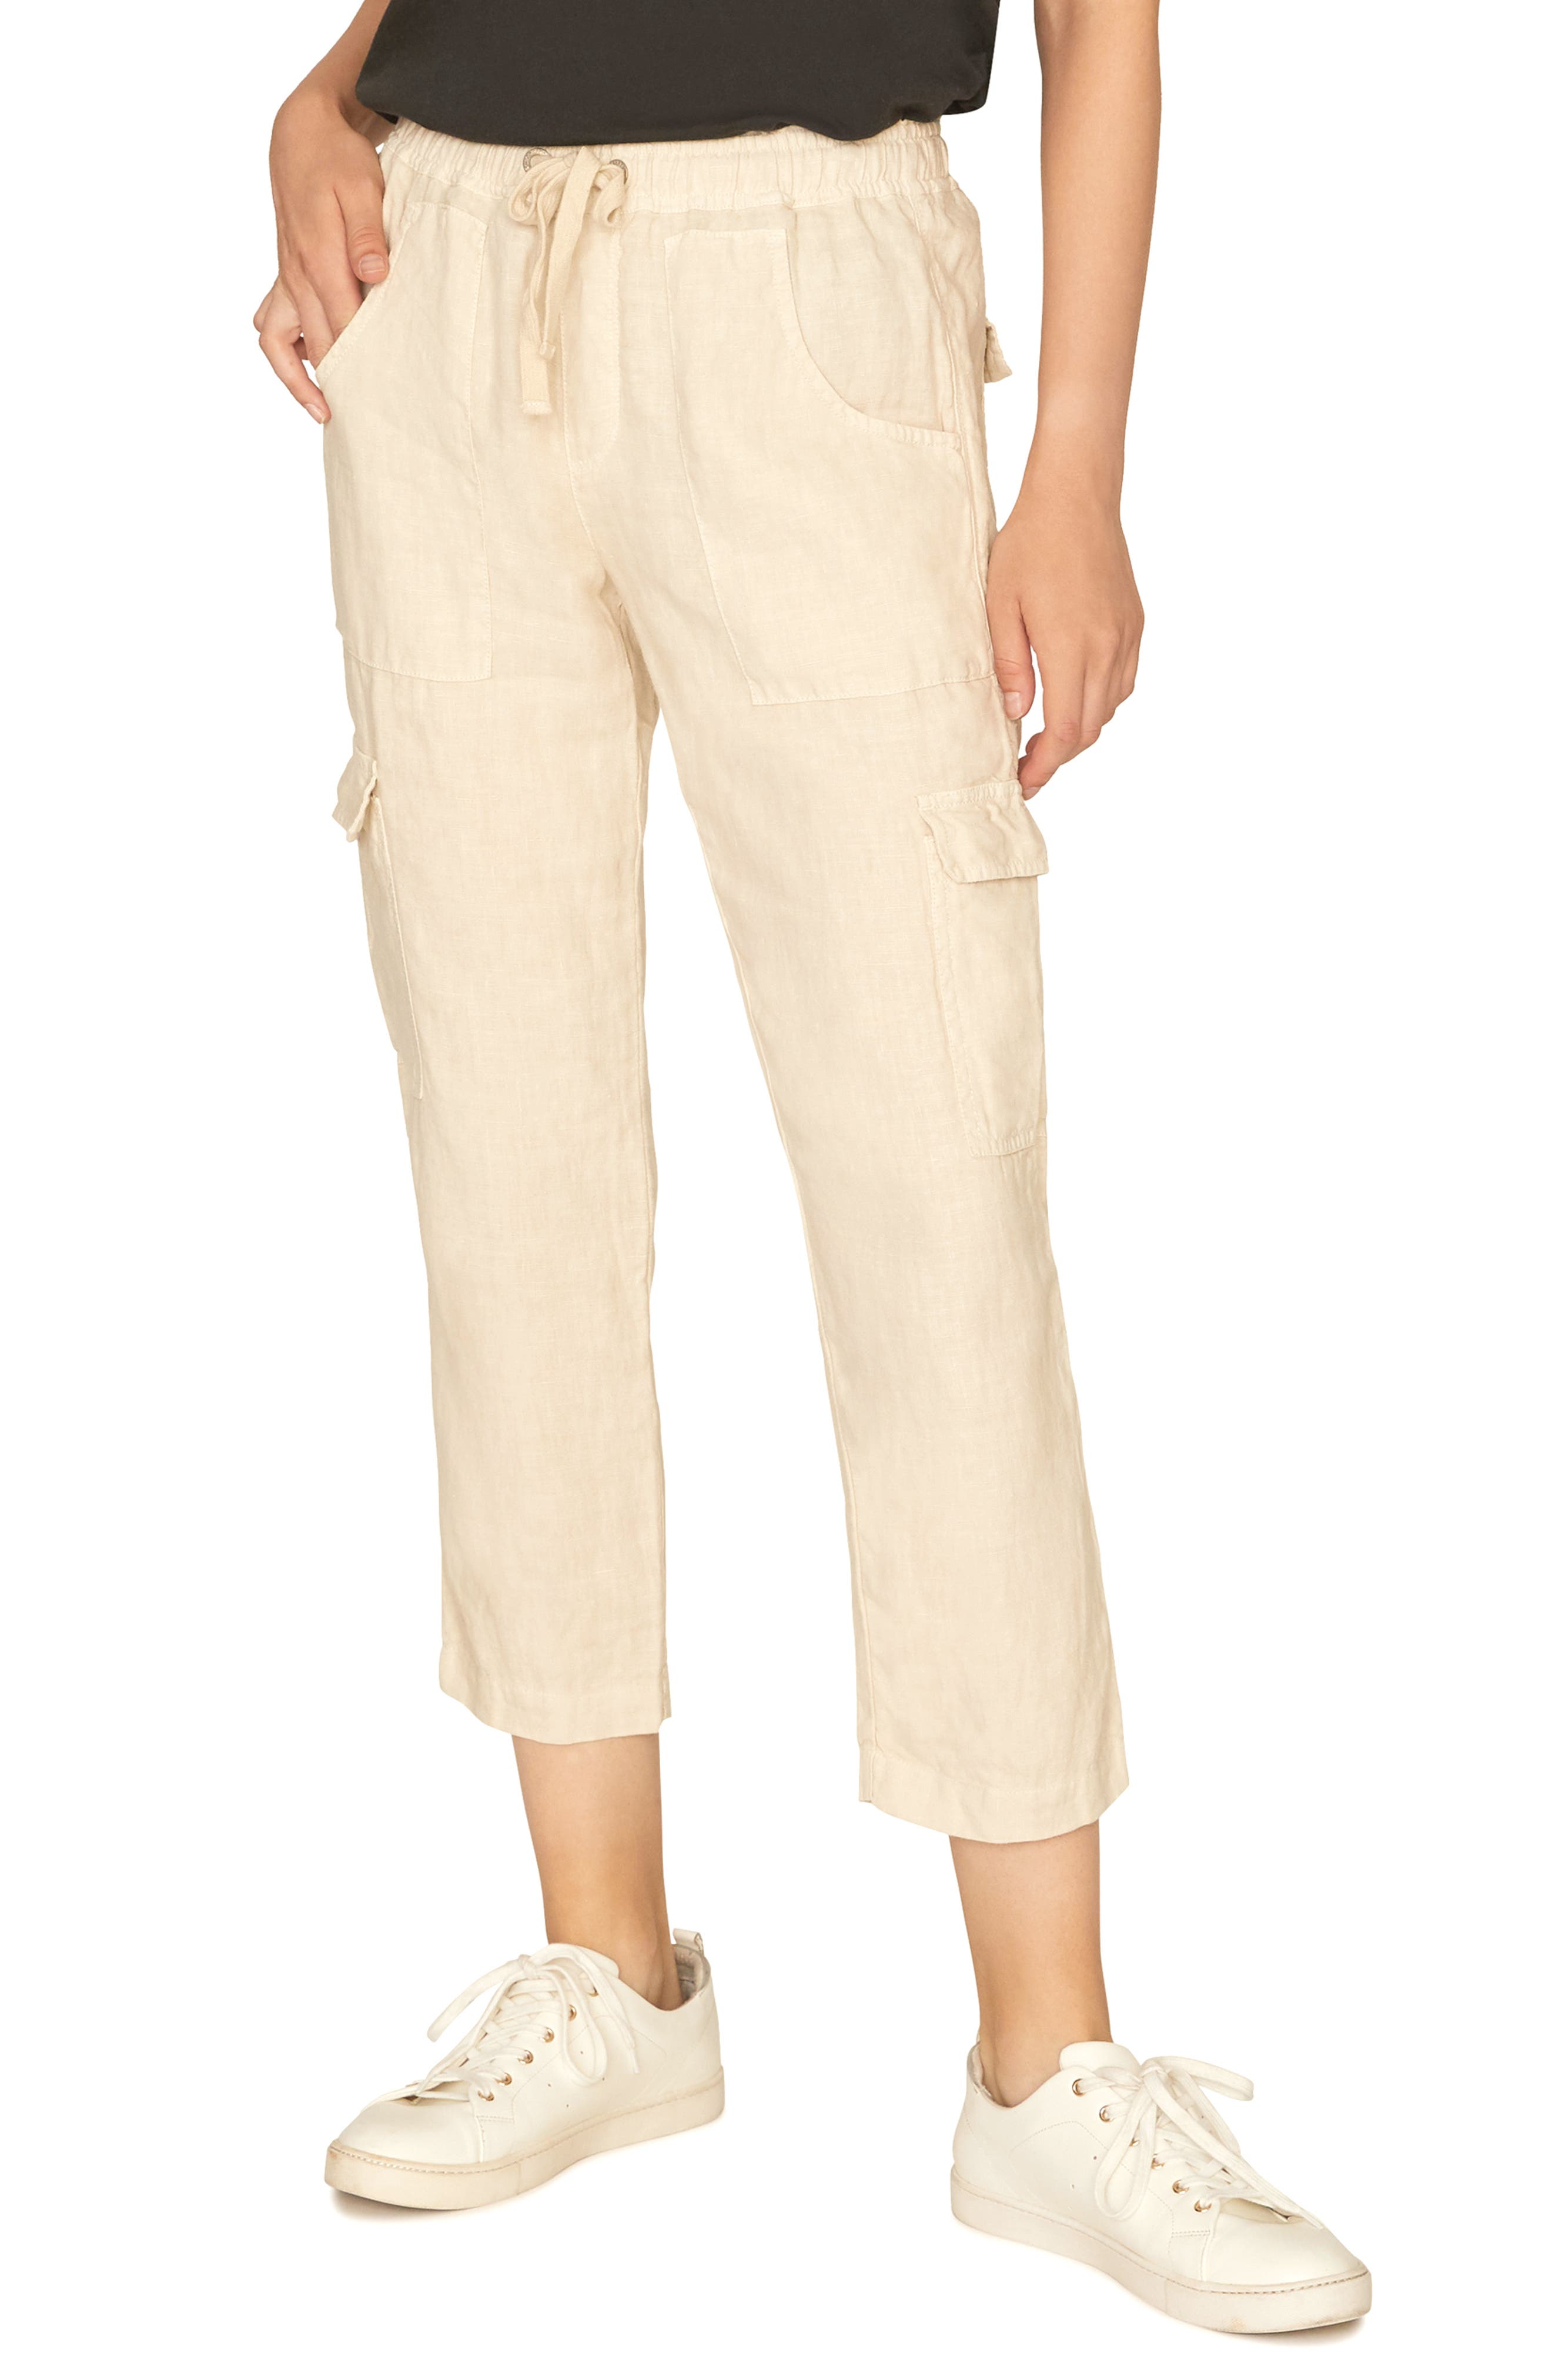 Sanctuary Discoverer Pull-On Cargo Pants, Ivory